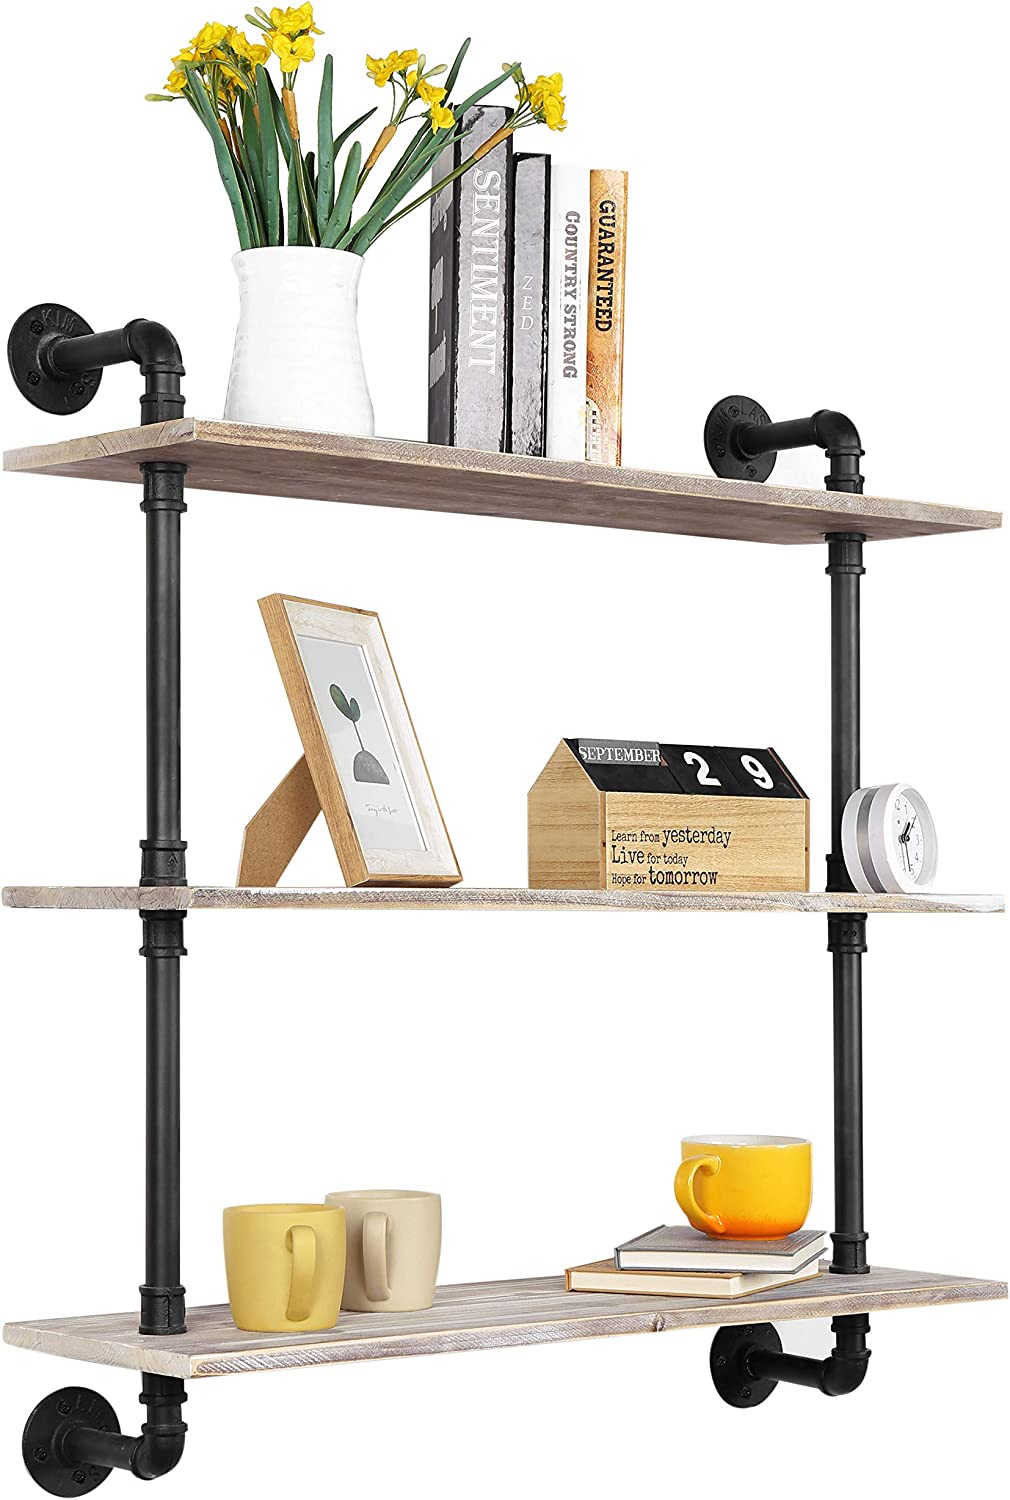 MyGift 3-Tier Rustic Wood Wall Display Popular Same day shipping brand in the world Floating Mounted wi Shelf